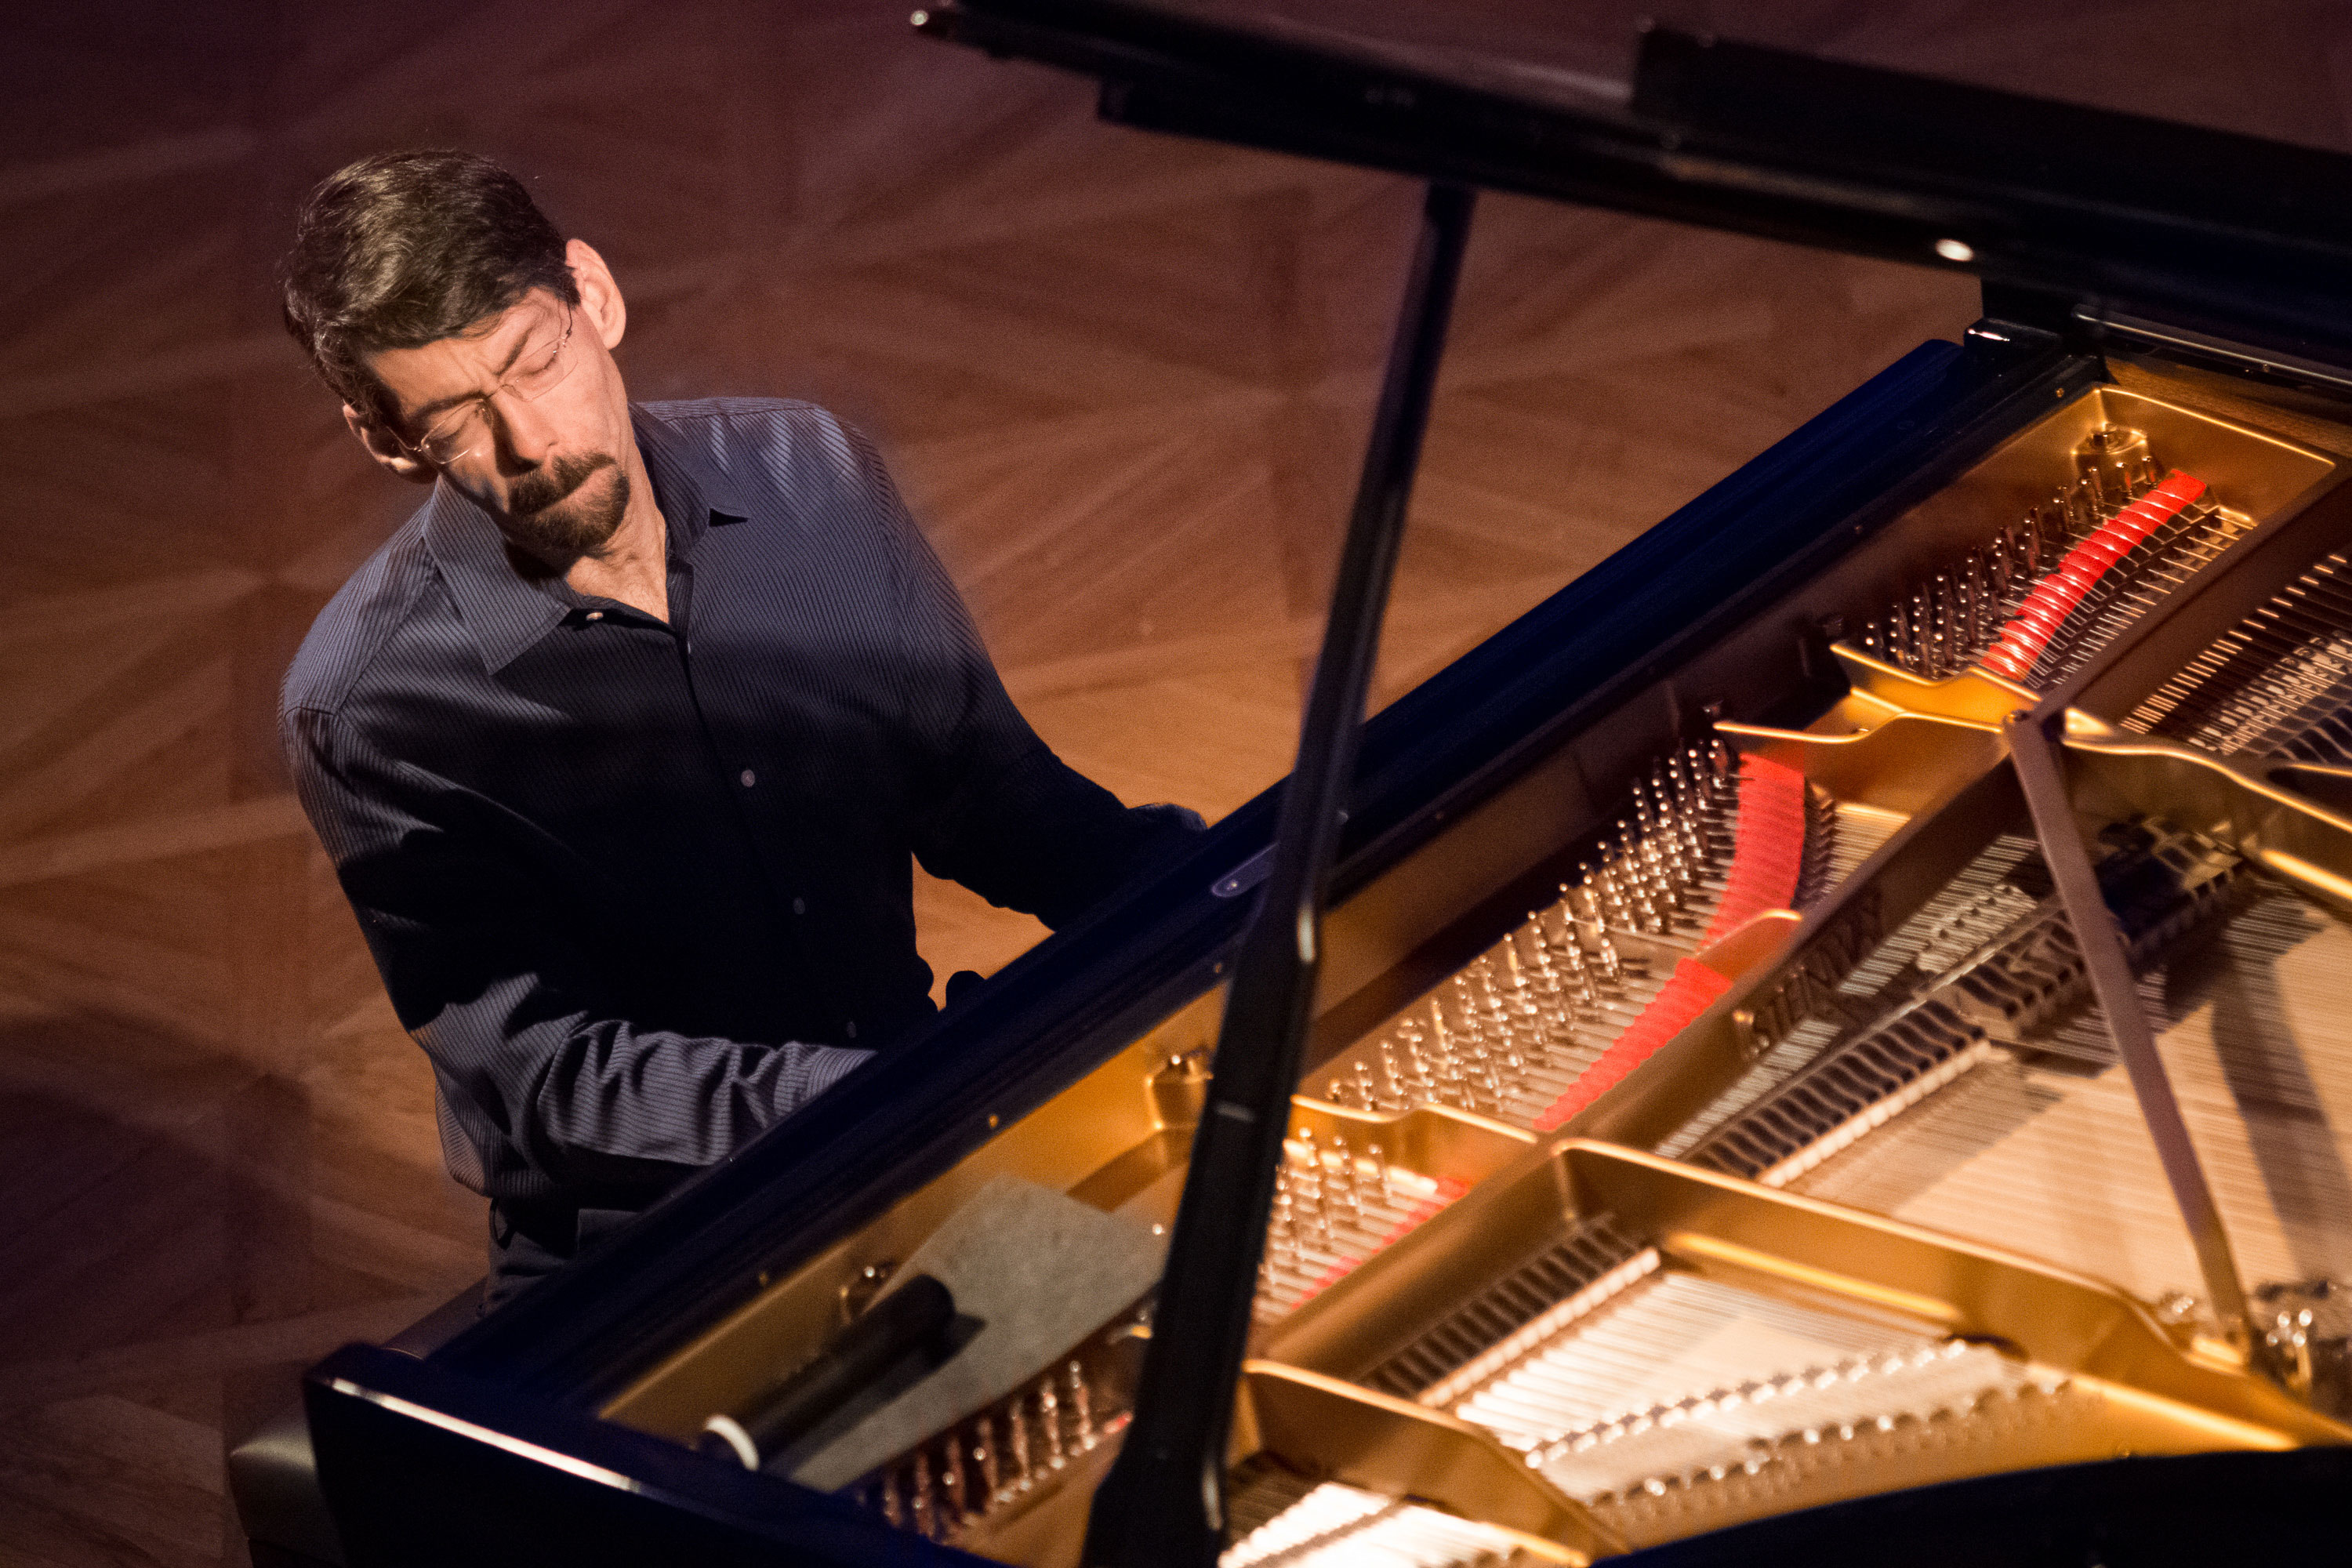 Fred Hersch, Legendary Jazz Pianist, Performs At NOCCA With The Fred Hersch Trio On February 24